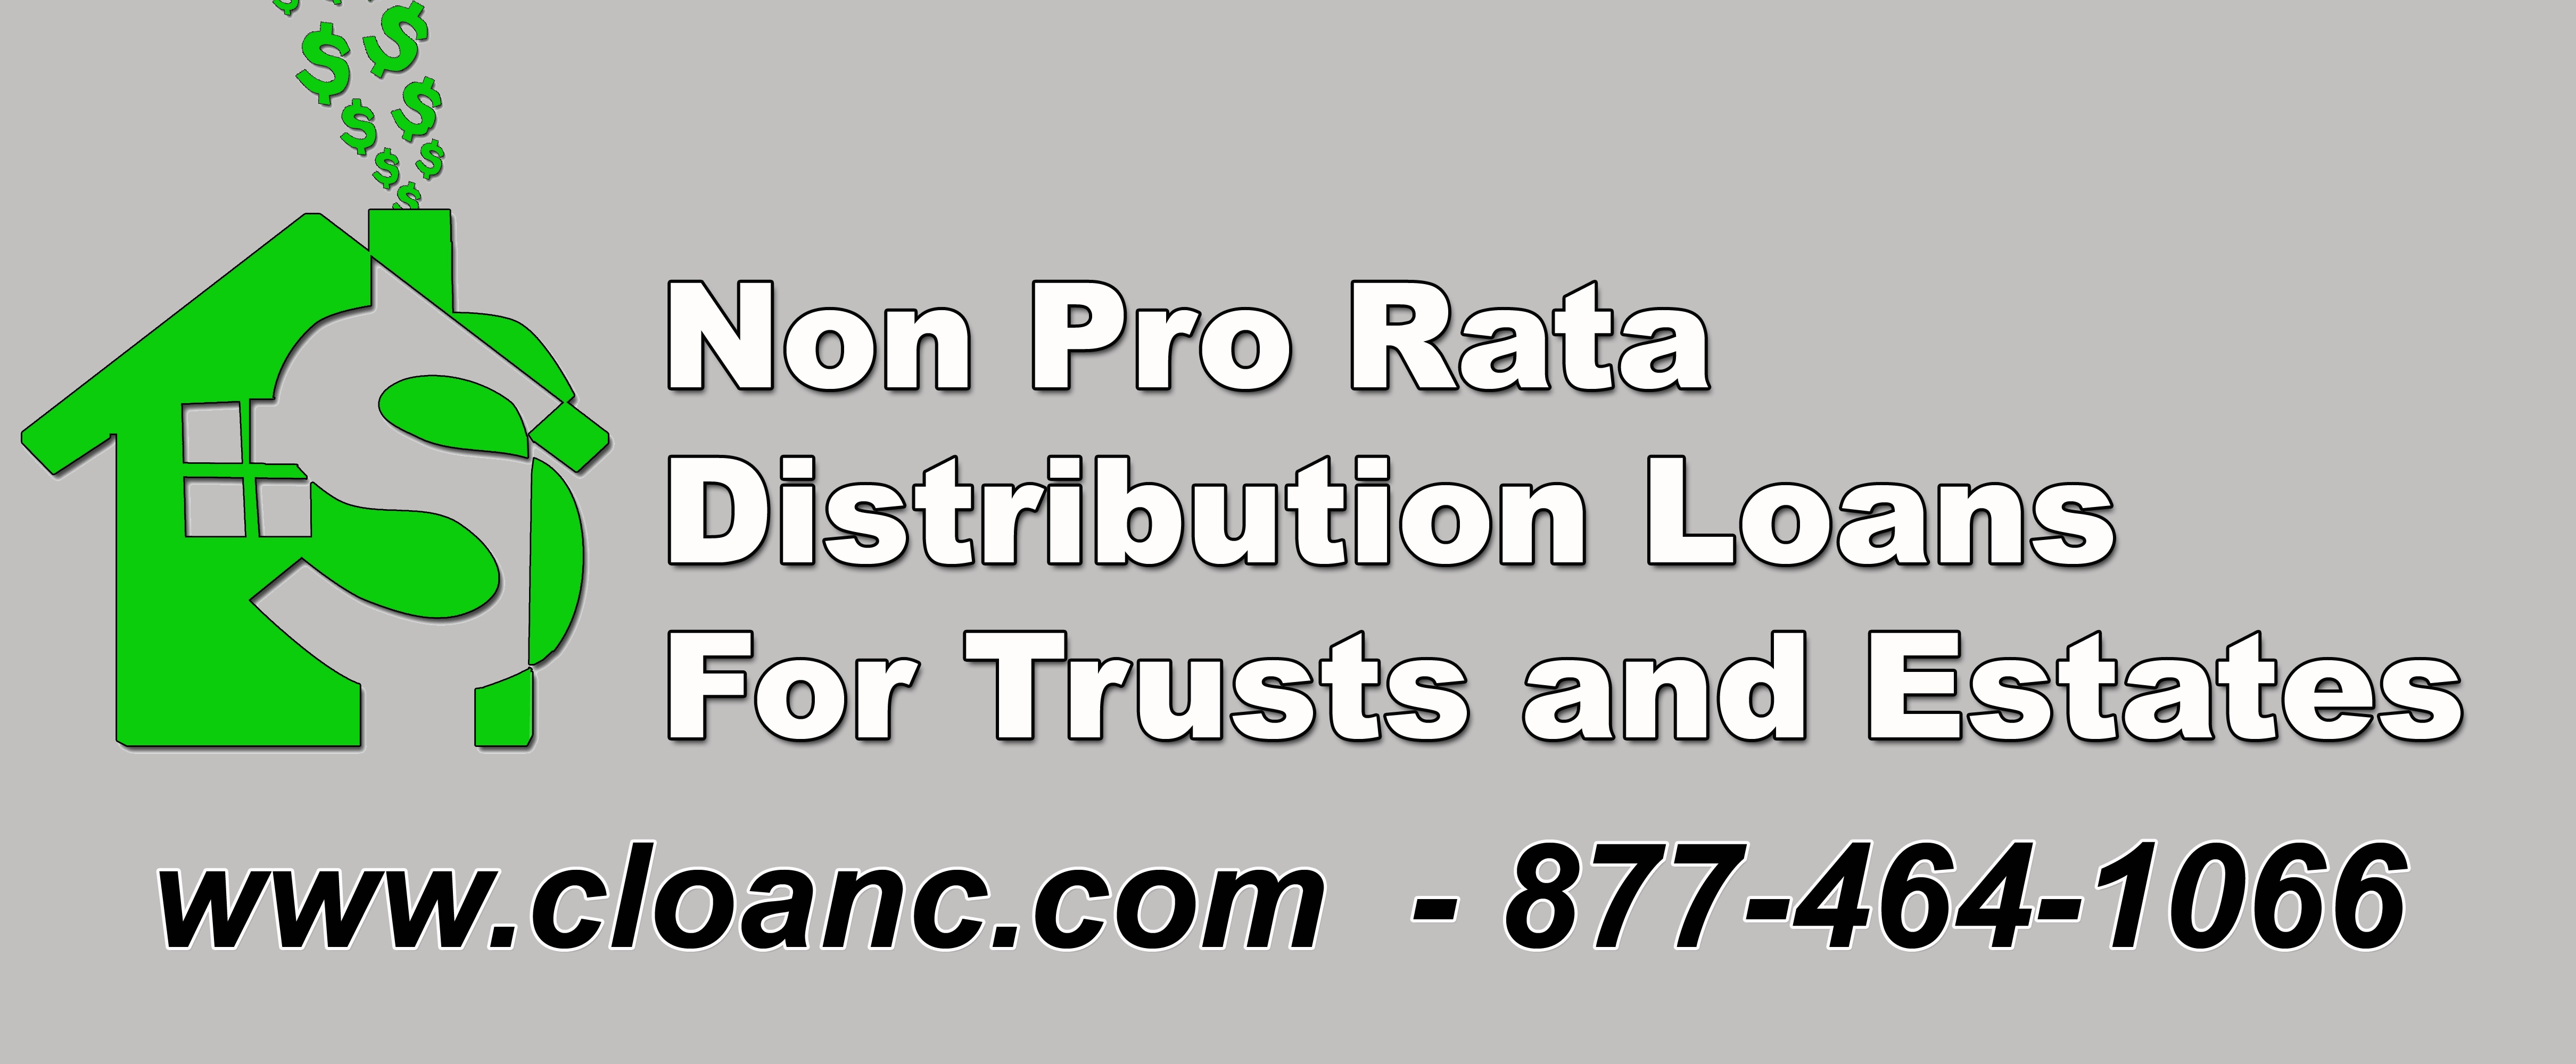 Non Pro Rata Distribution Loans For Trusts and Estates